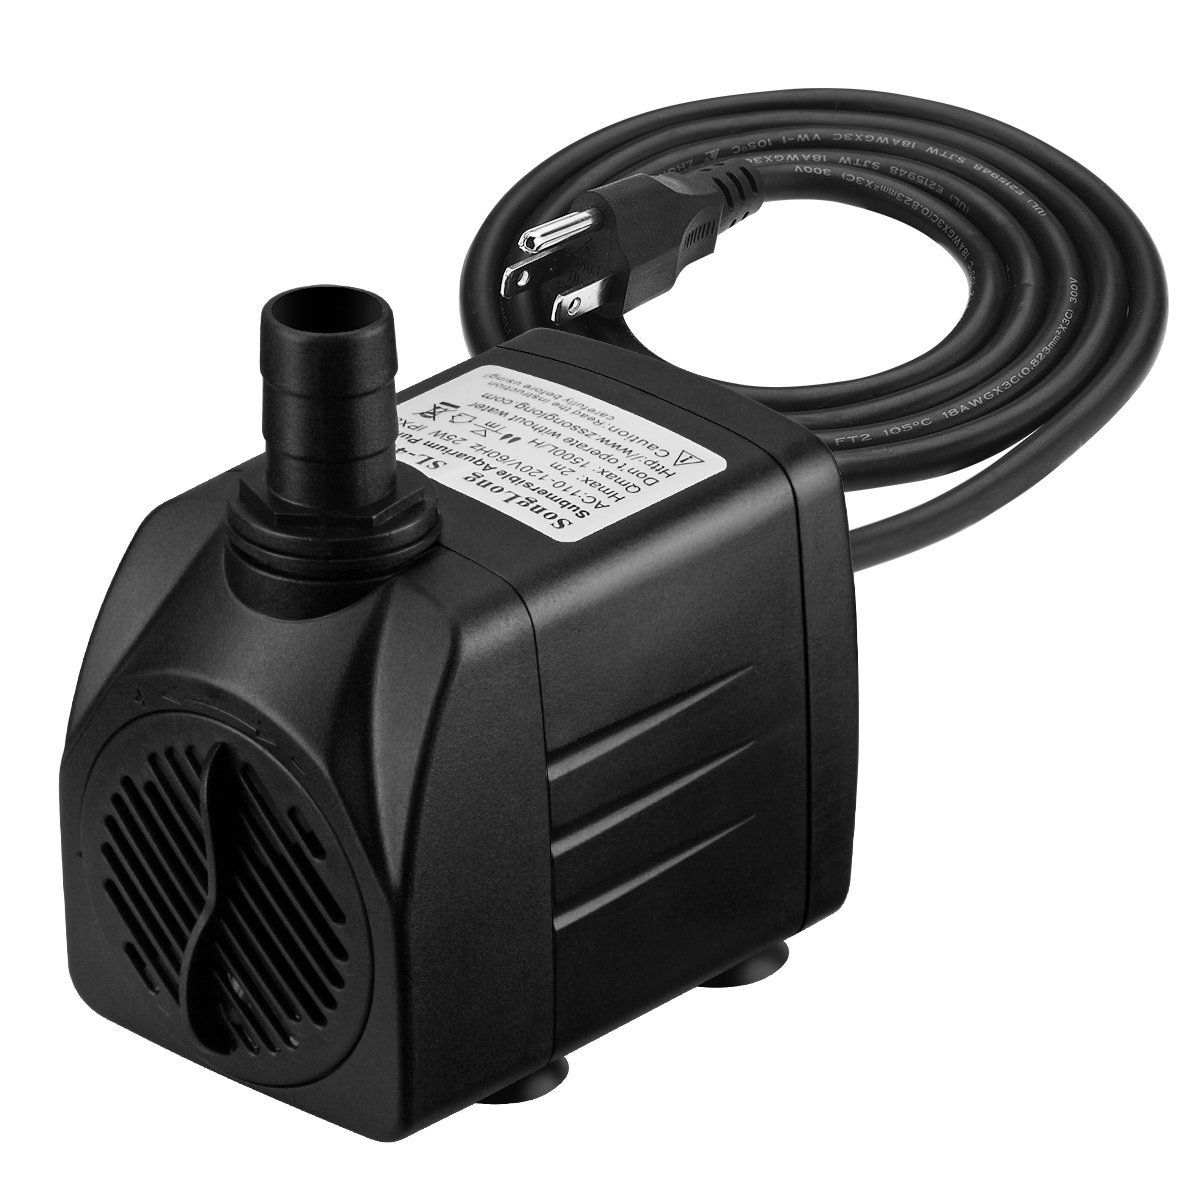 400 GPH Submersible Pump, Magicfly 25W Fountain Water Pump with 5.9ft Power Cord For Pond, Aquarium, Fish Tank